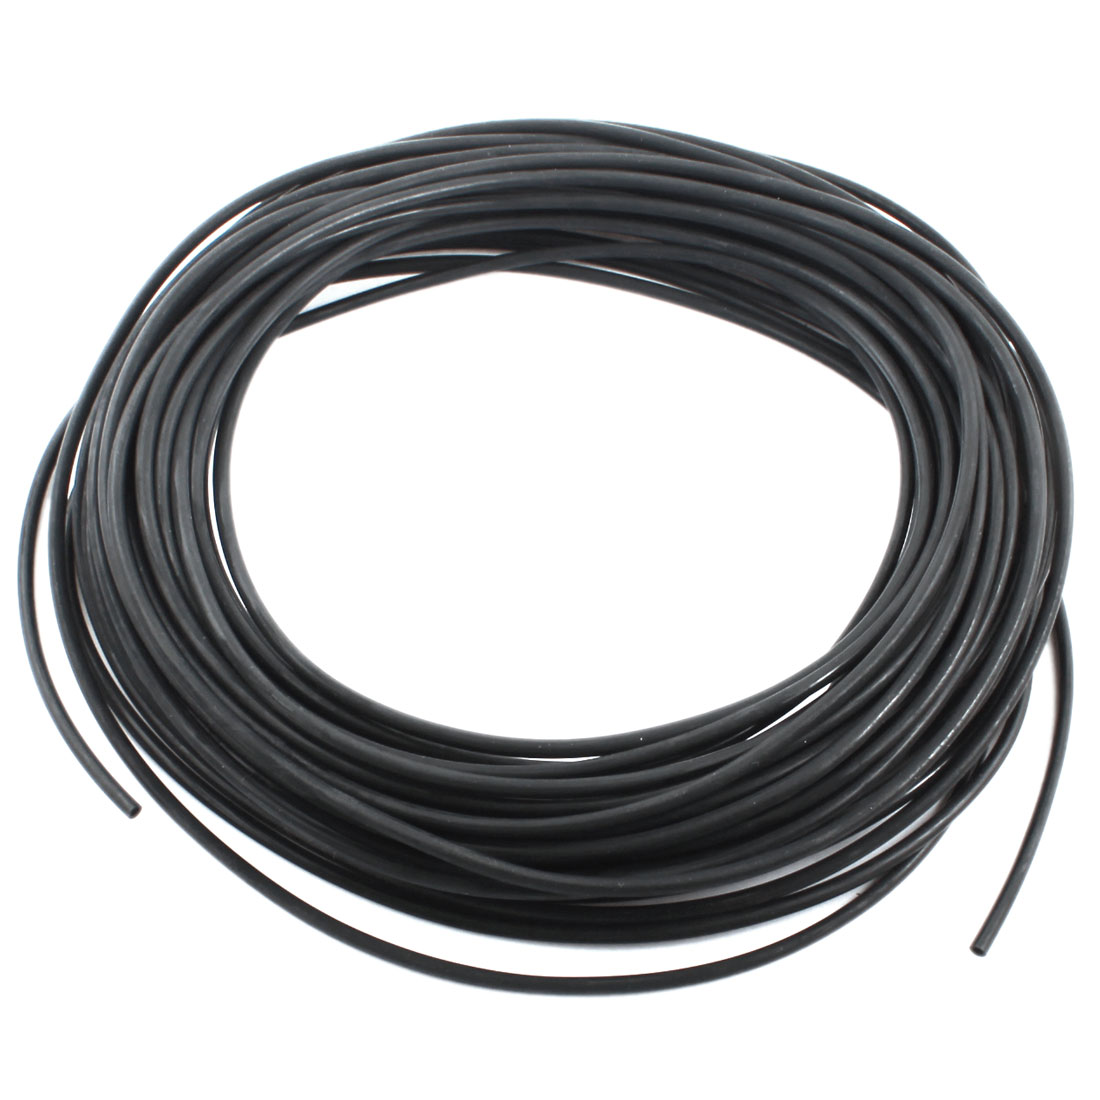 25M/82Ft Long 2.5mmx4mm Fuel Gas Petrol Diesel Flexible Air PU Tube Pneumatic Pipe Hose Black